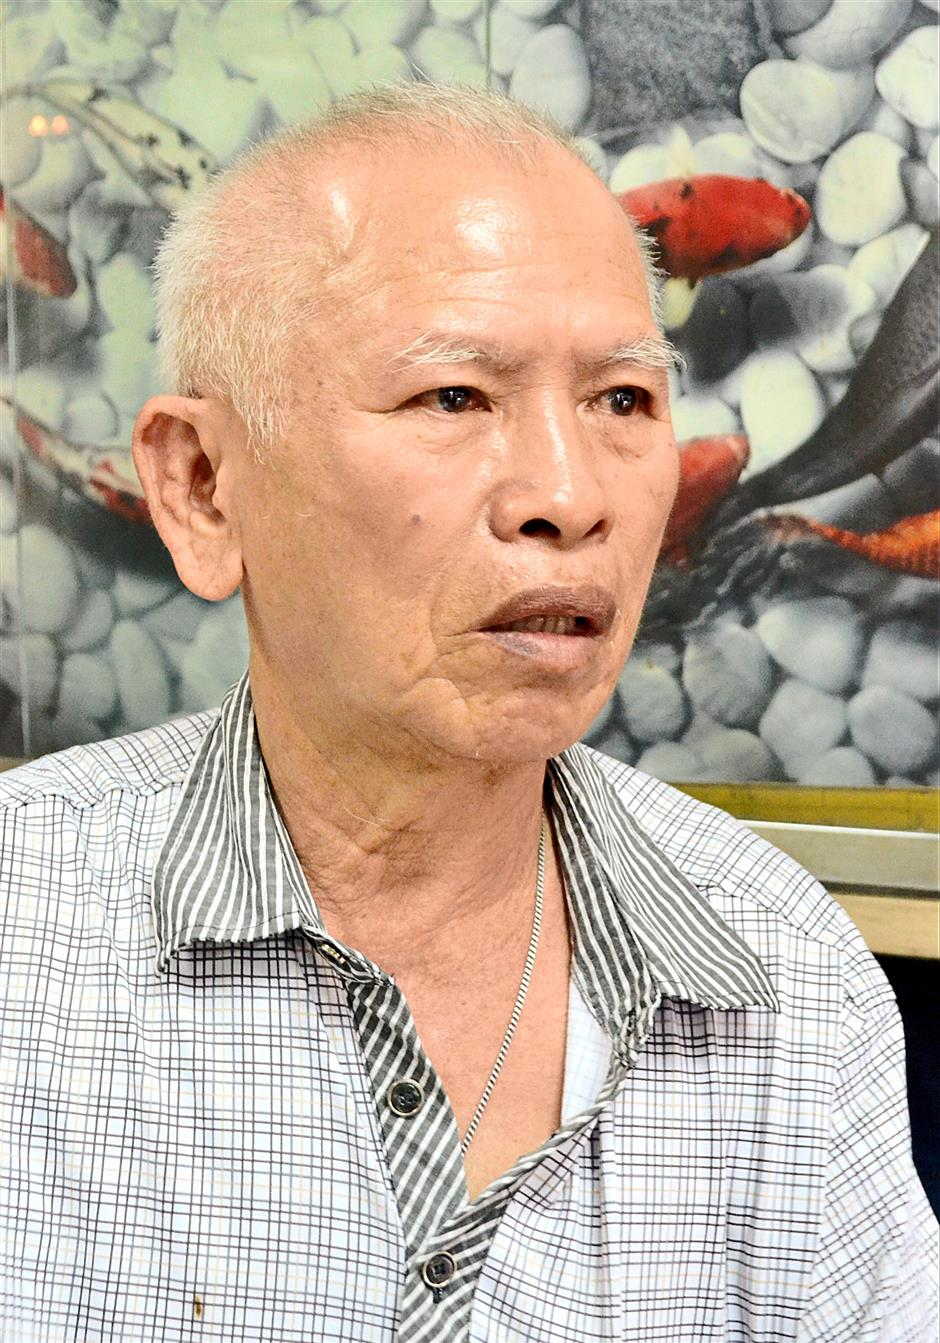 Tailor Cheong Chin Hin said he can see commotion broke off inside the Pudu Prison